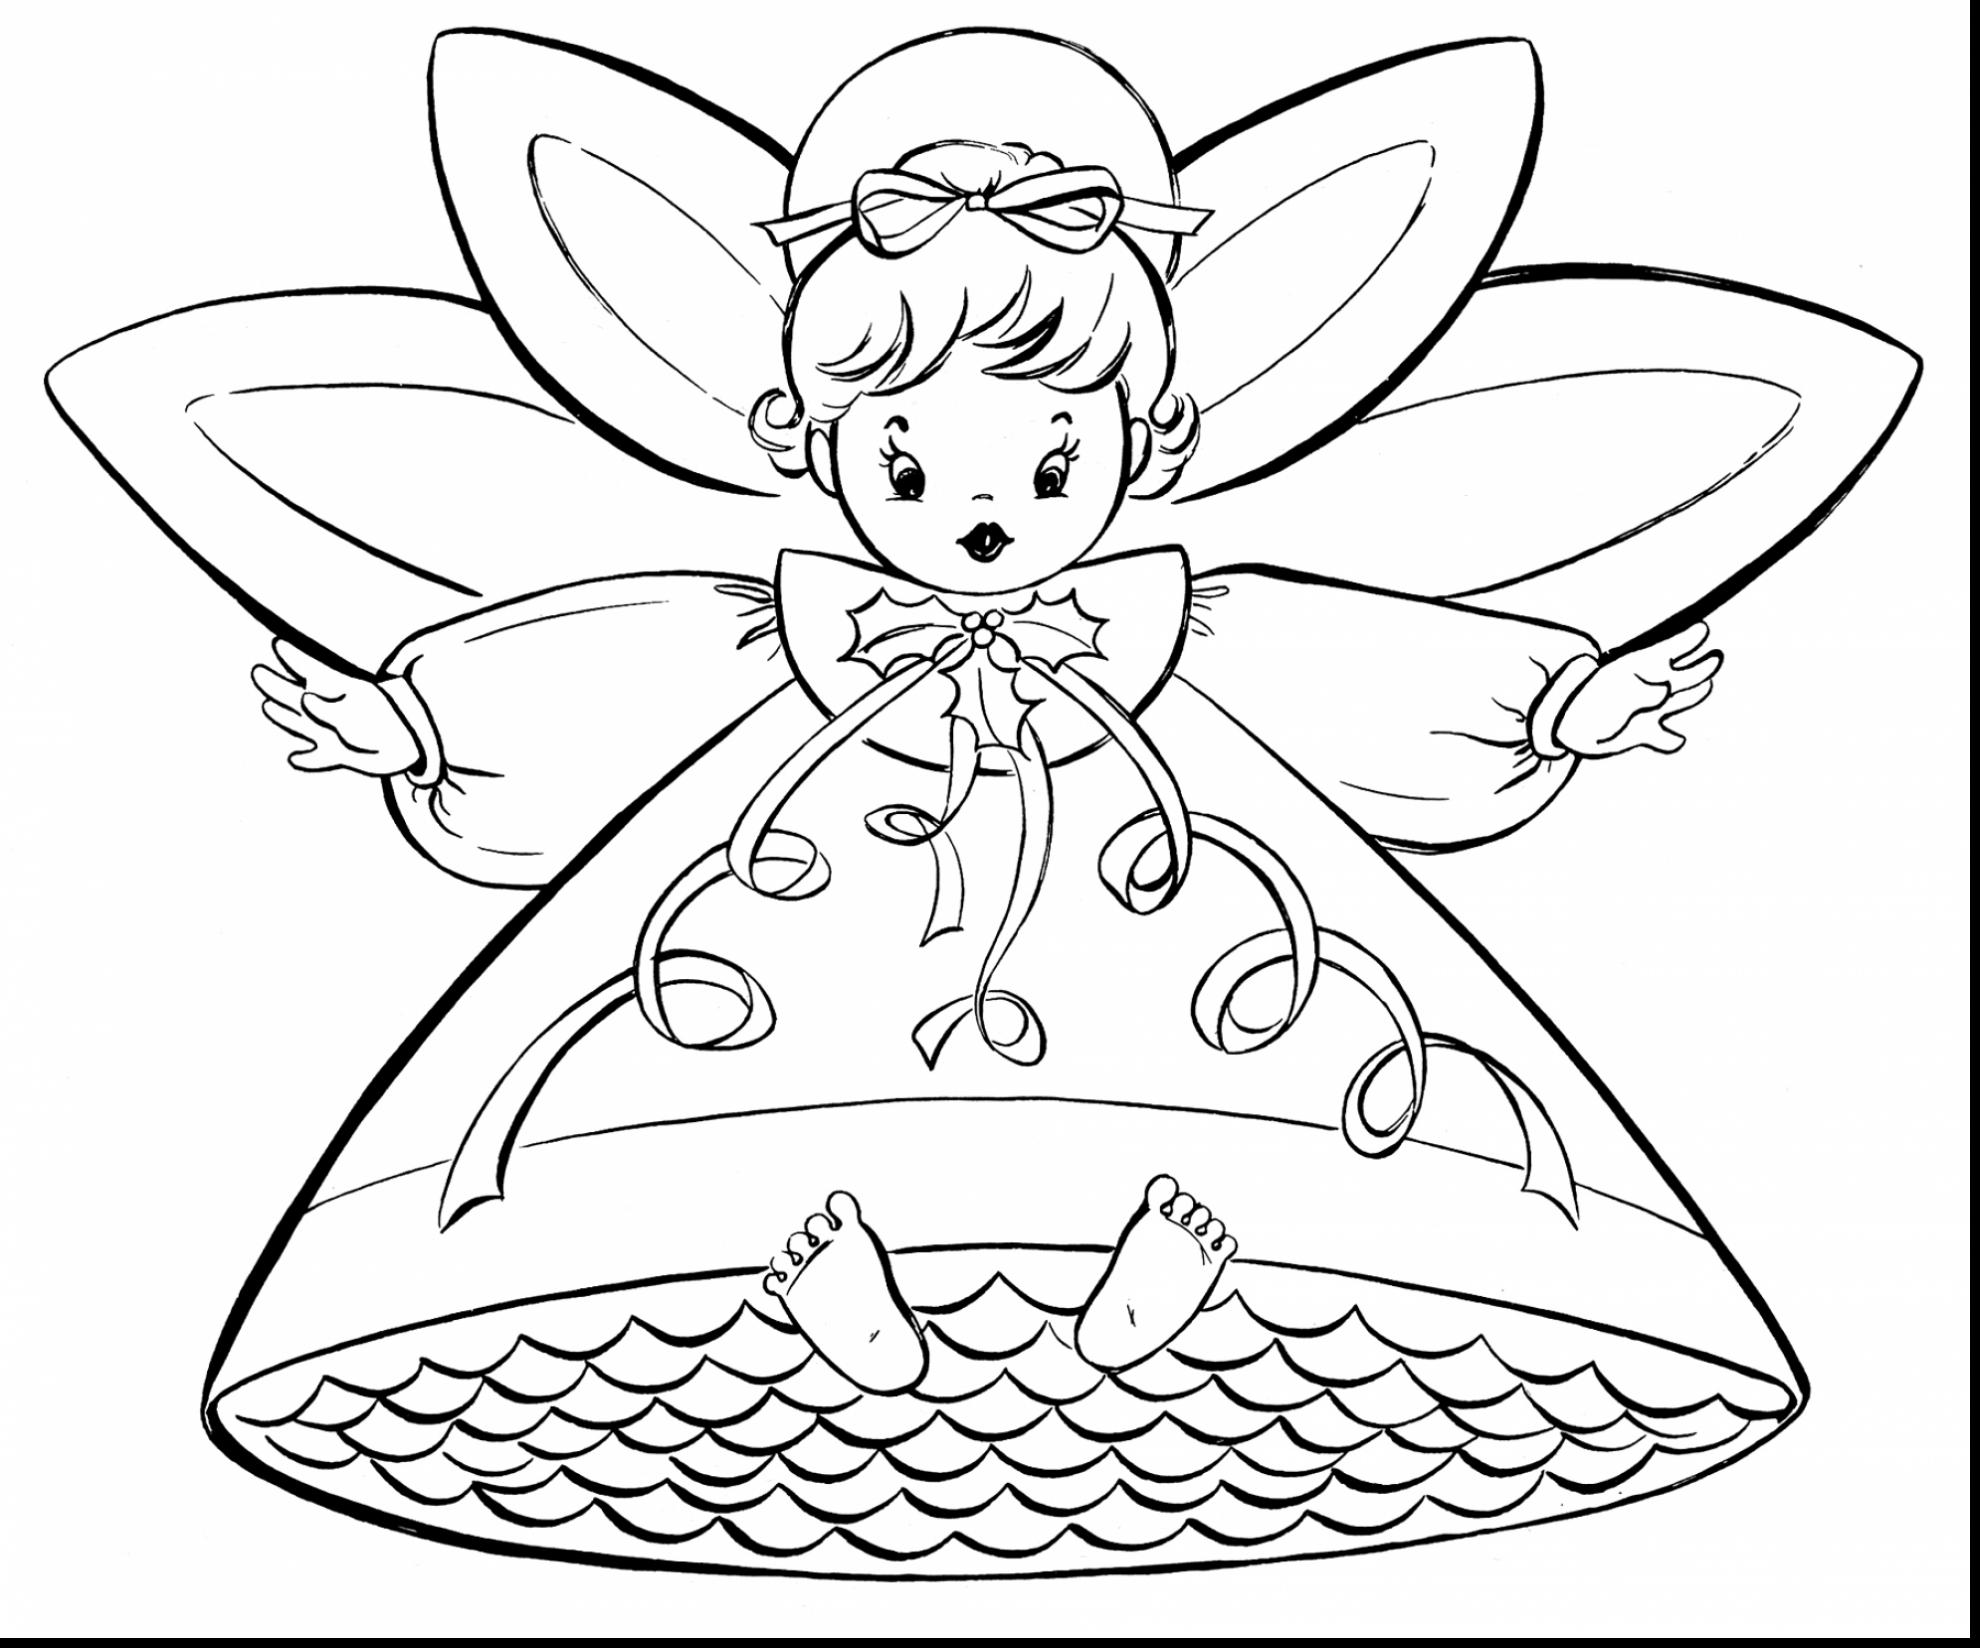 1980x1648 Neat Design Cute Coloring Pages For Adults Books Picture Ideas